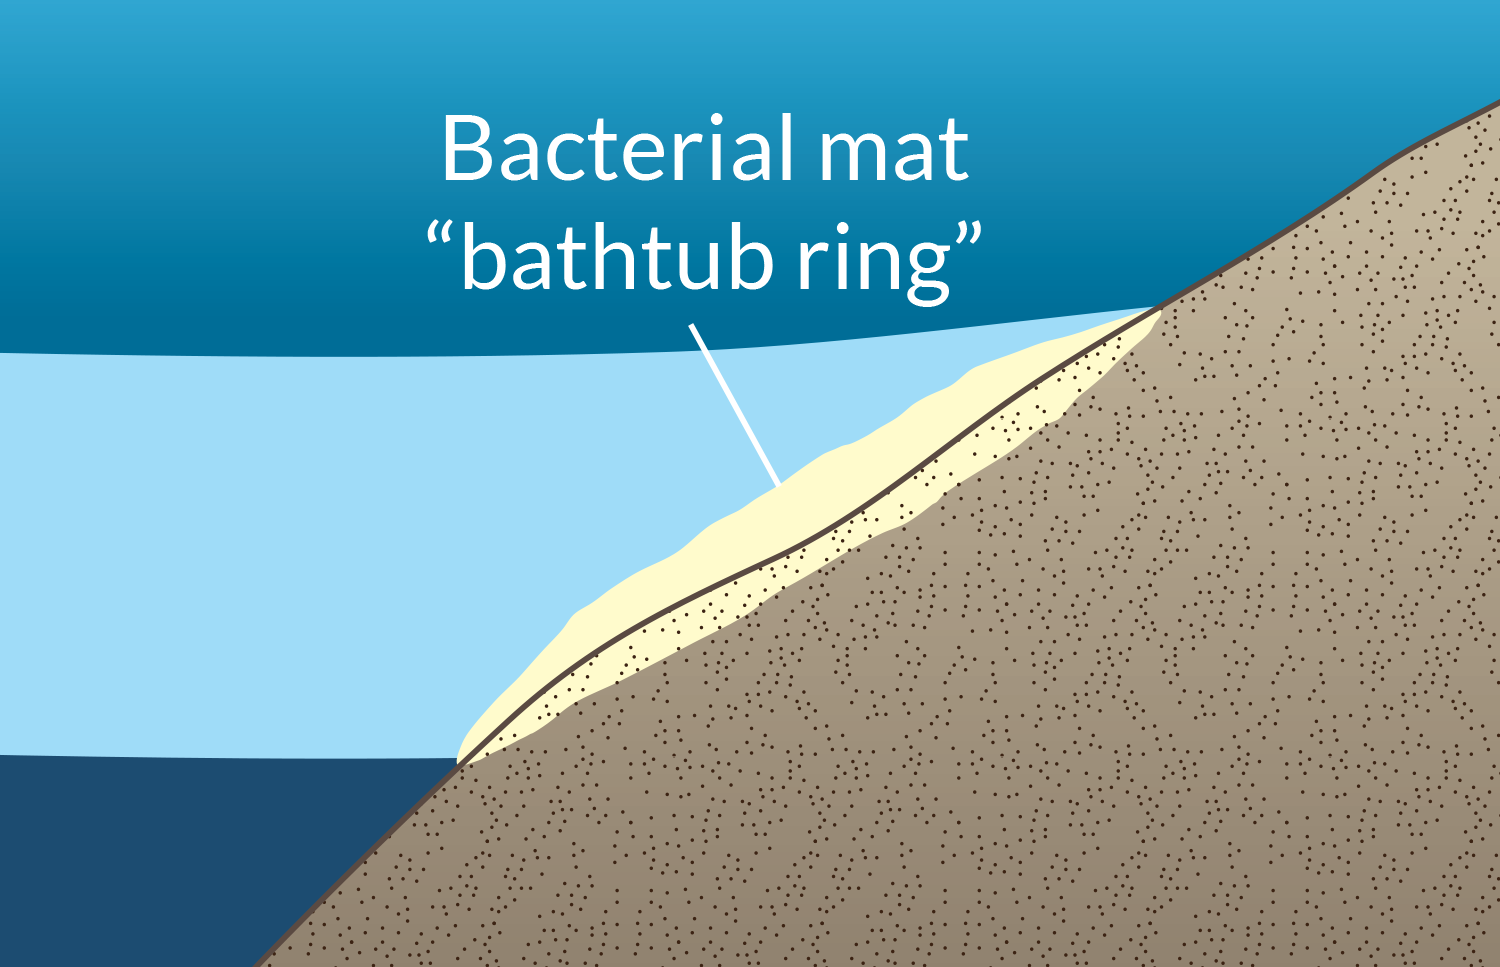 """The halocline sits on top of the very salty water in the basin and touches the sides of the basin. Researchers call that area the """"bathtub ring"""" because it is like the ring of soap scum and dirt that forms on a bathtub when the water is drained out."""